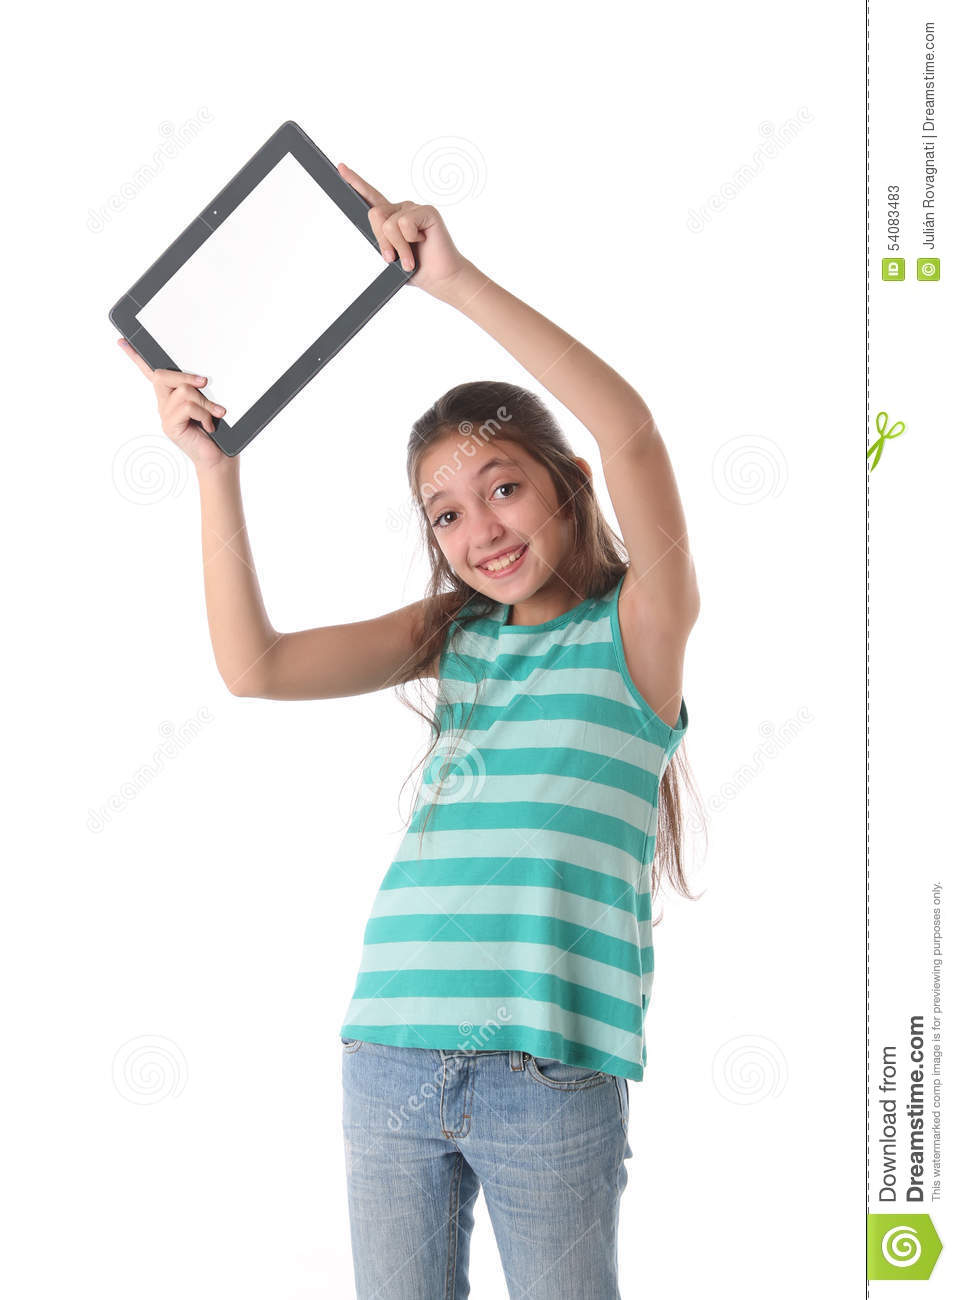 Teen using computer nutt